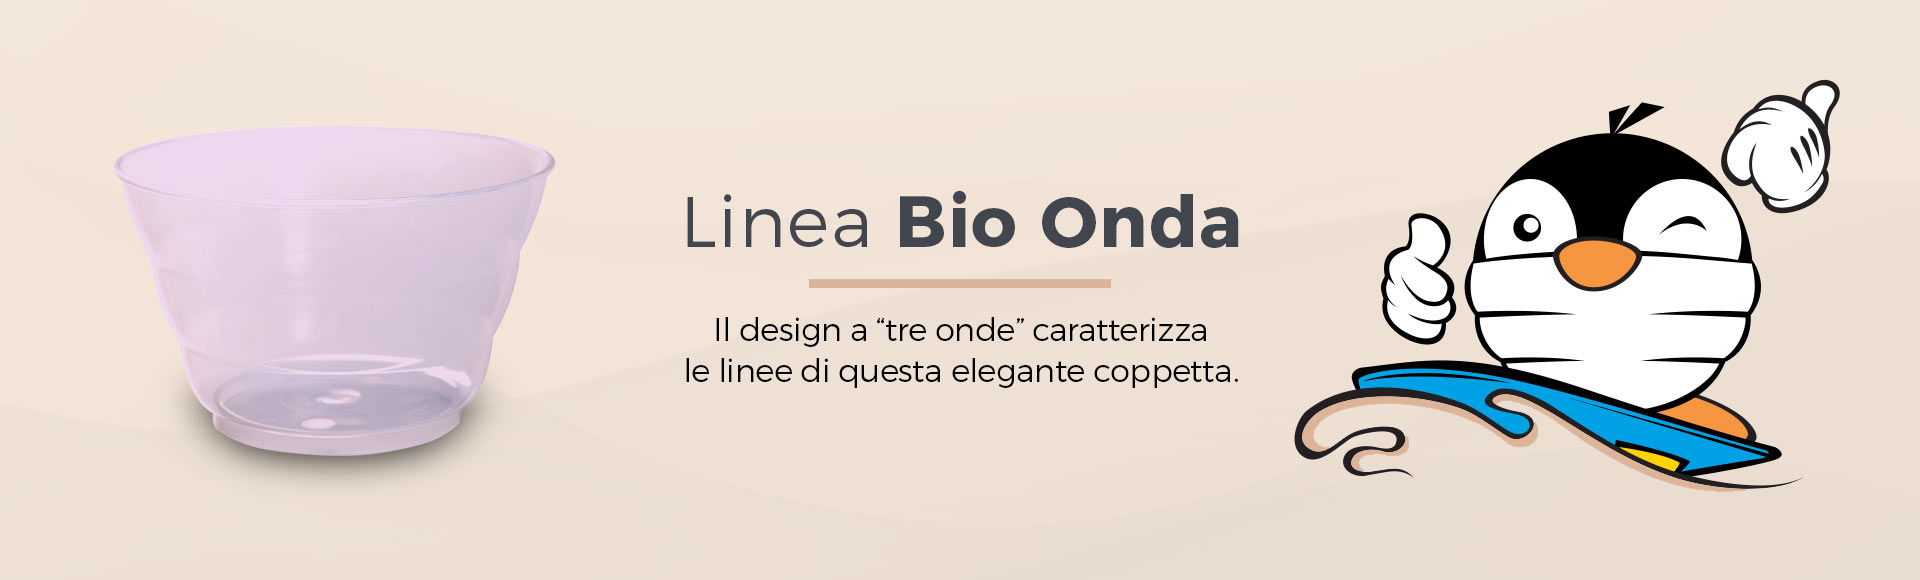 it-header-linea-bio-onda